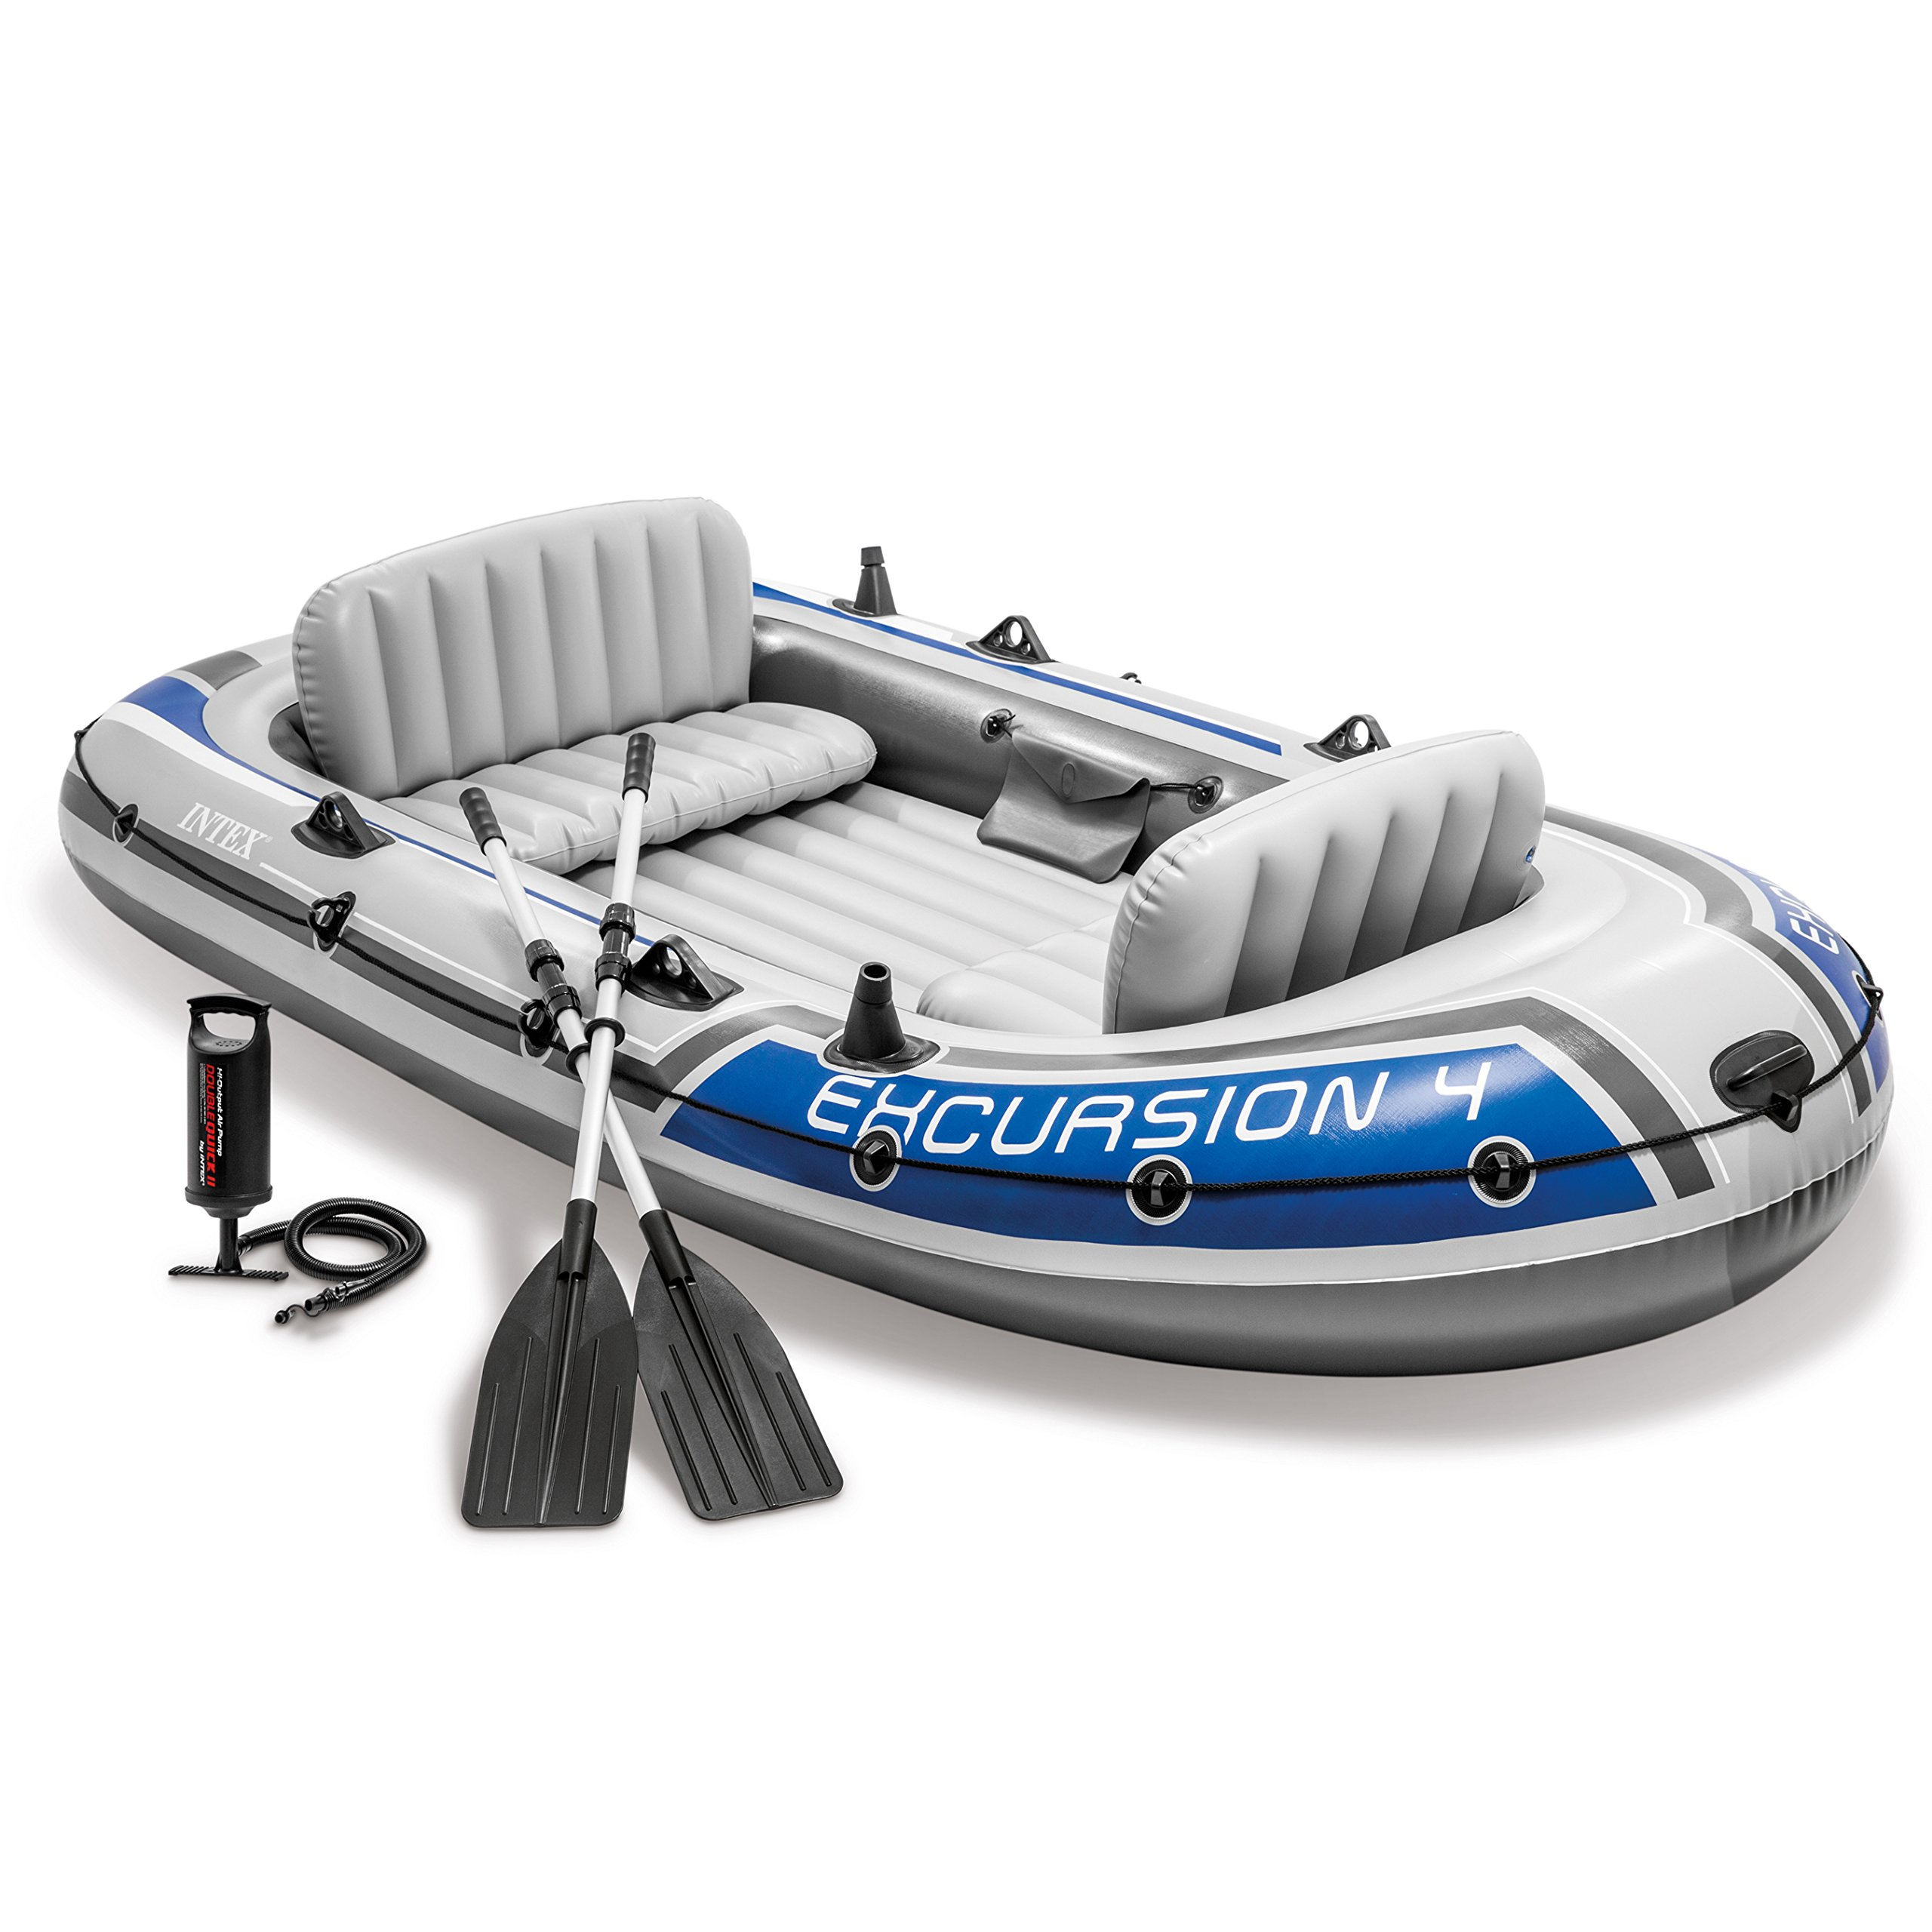 Intex Excursion 4, 4-Person Inflatable Boat Set with Aluminum Oars and High Output Air Pump (Latest Model) by Intex